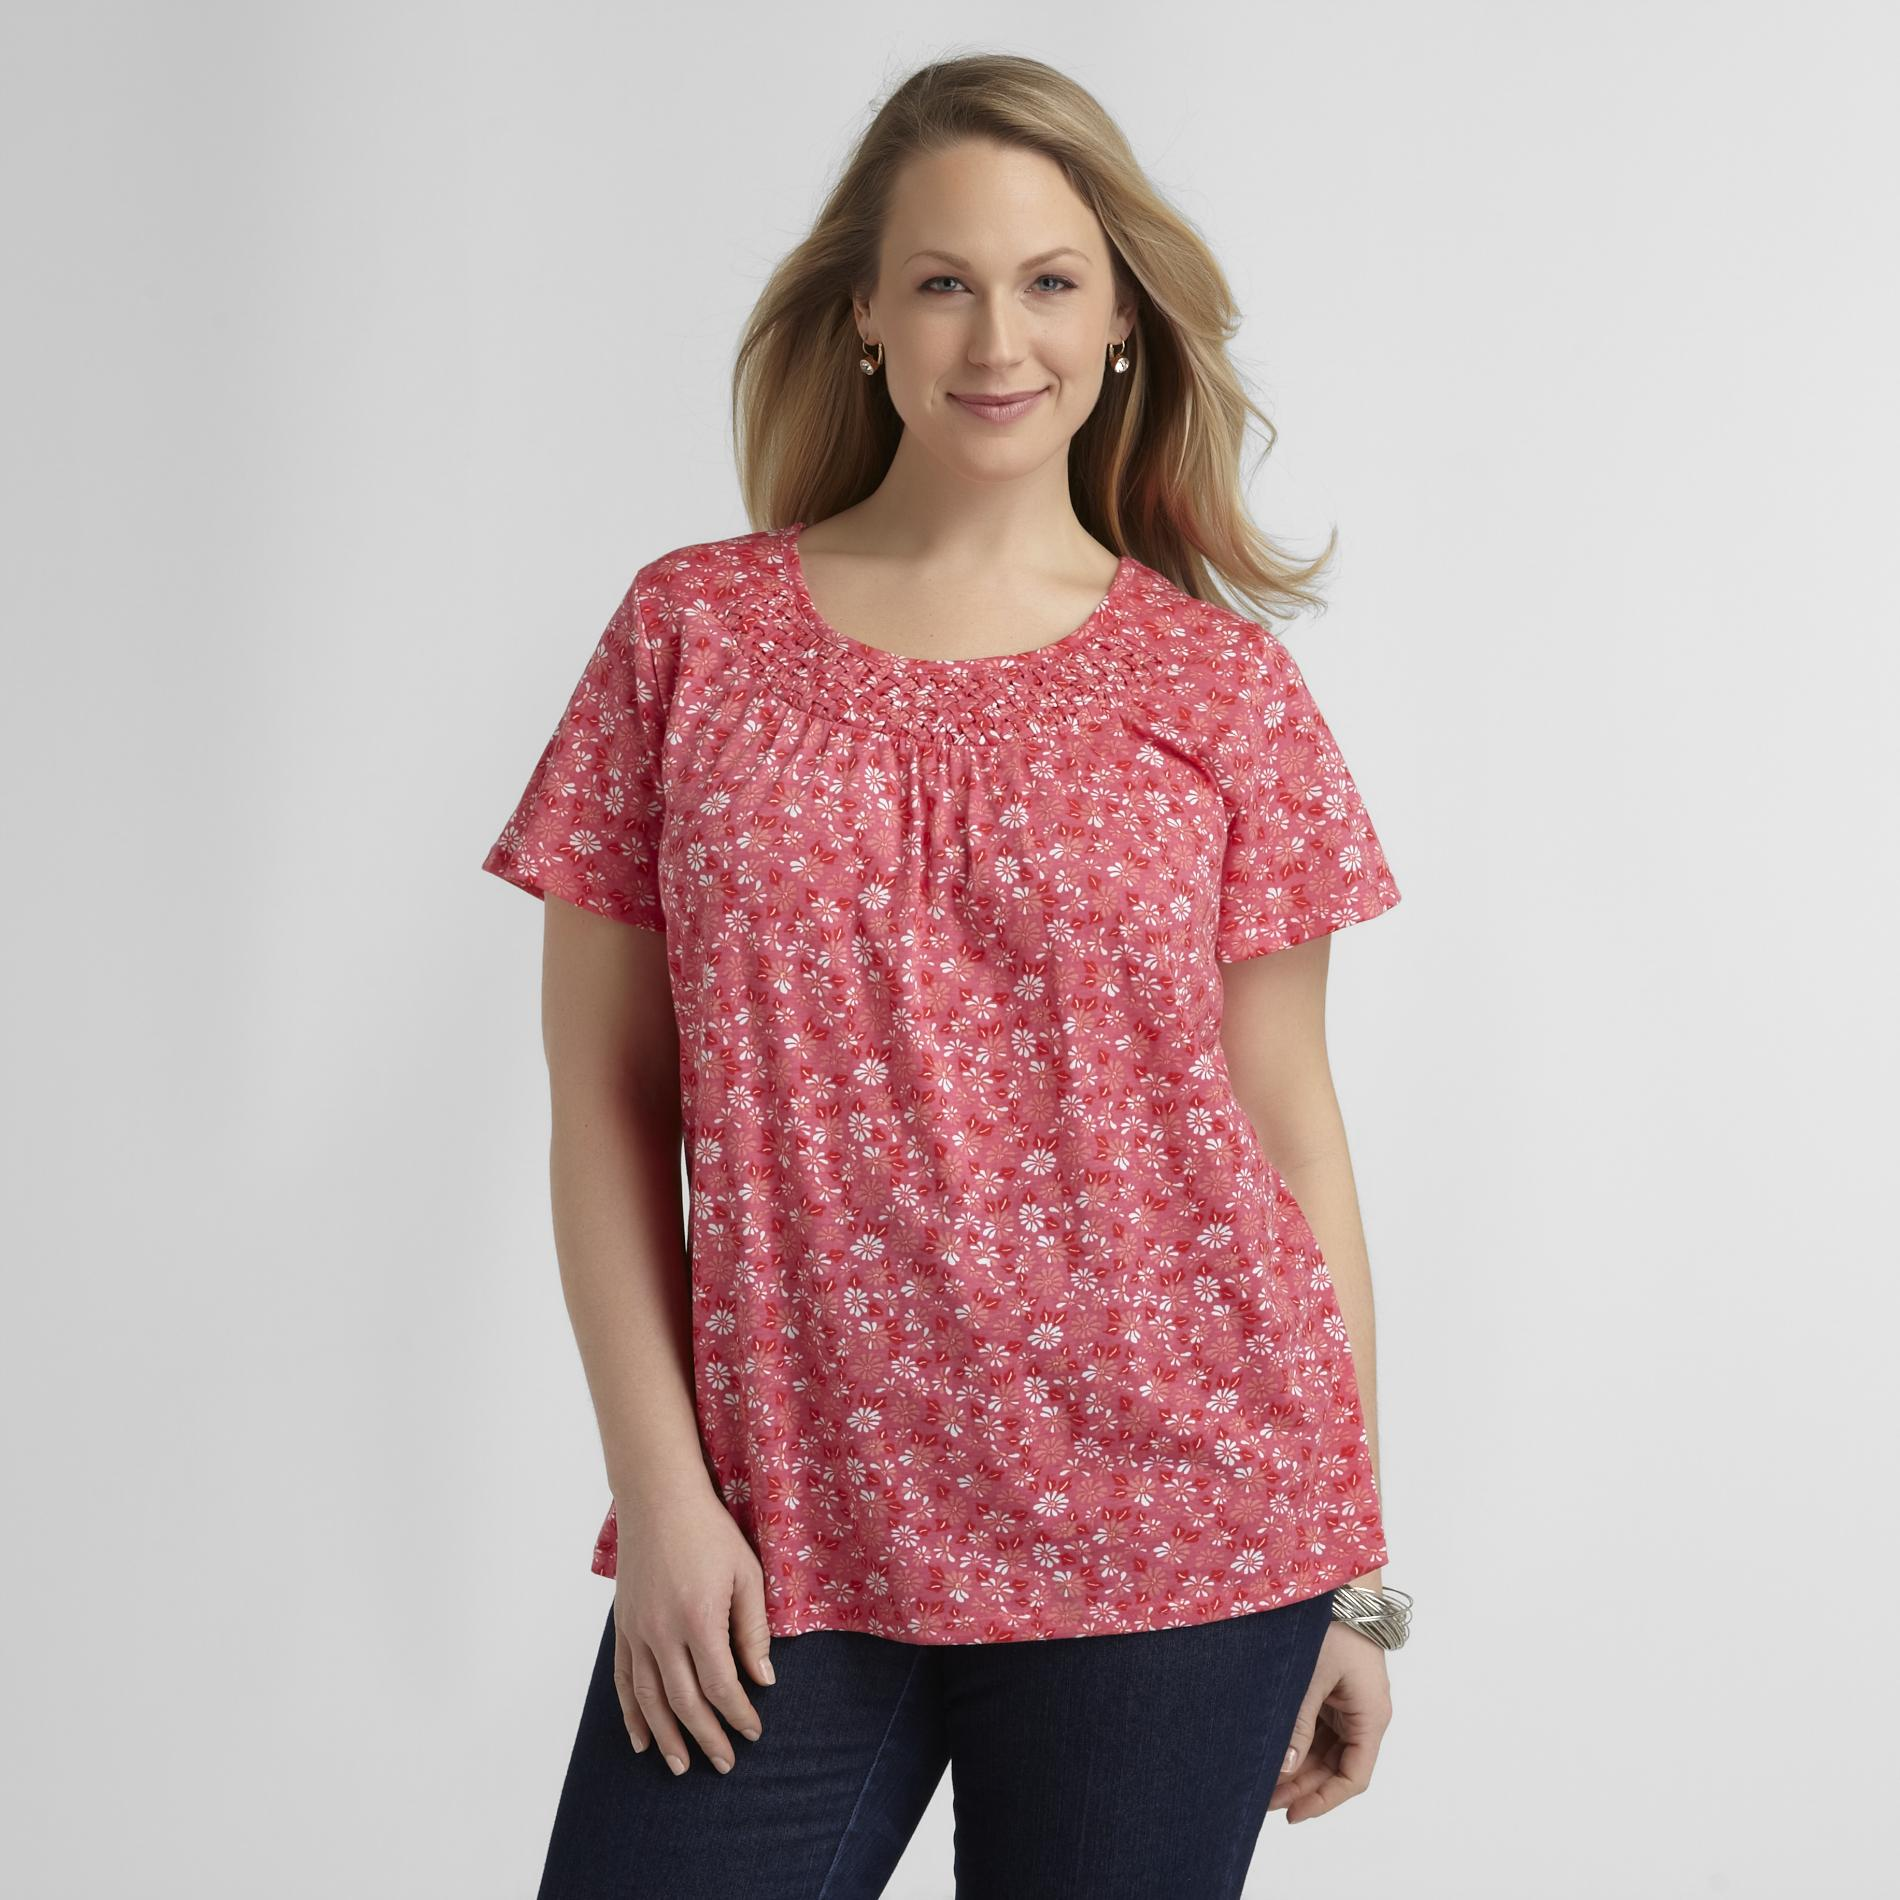 Basic Editions Women's Lattice-Neck Top at Kmart.com